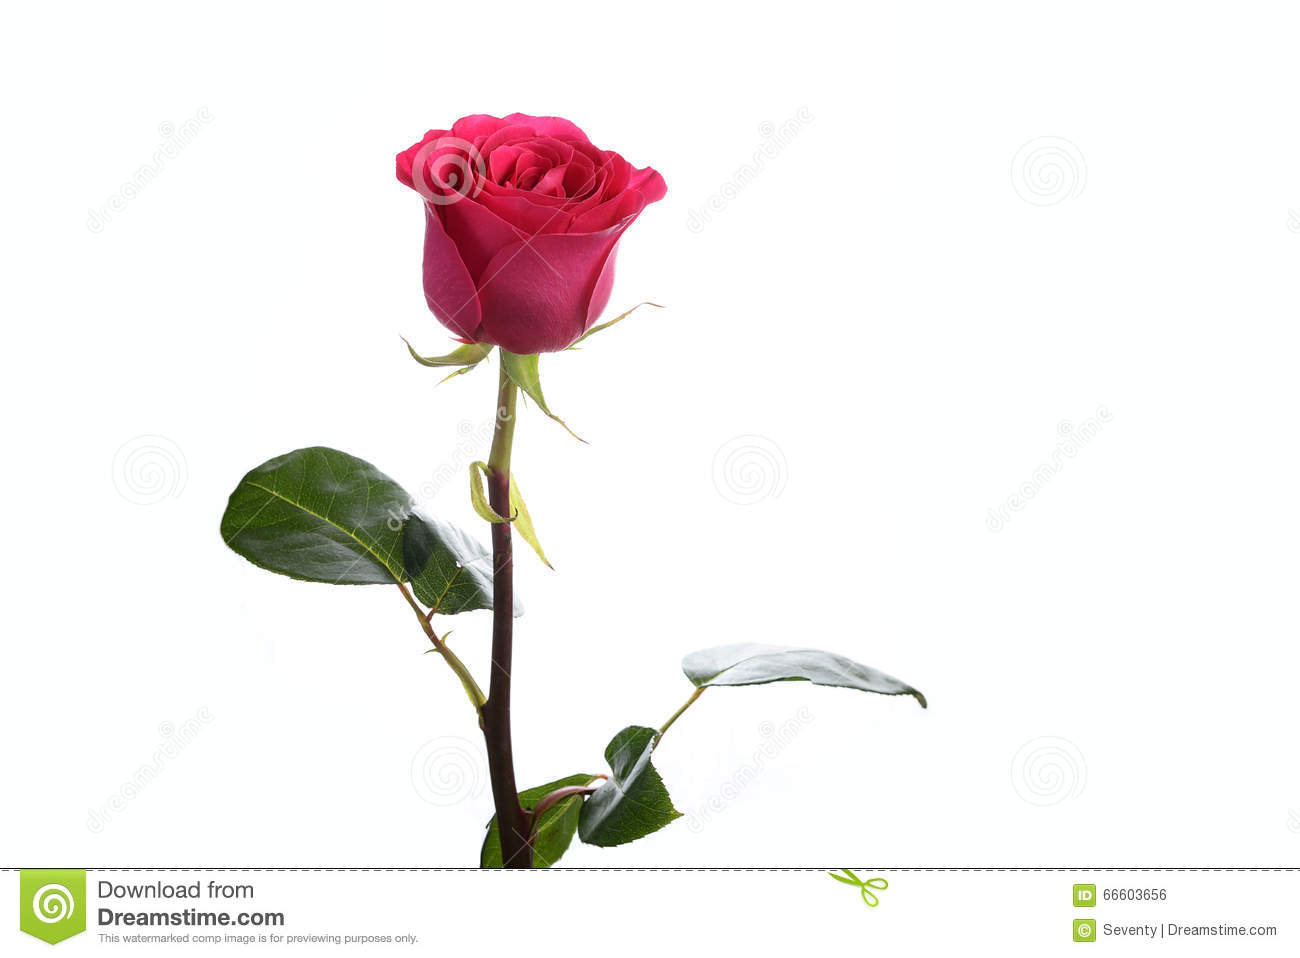 Flower a rose pink floyd stock photo image of plants 66603656 flower a rose pink floyd mightylinksfo